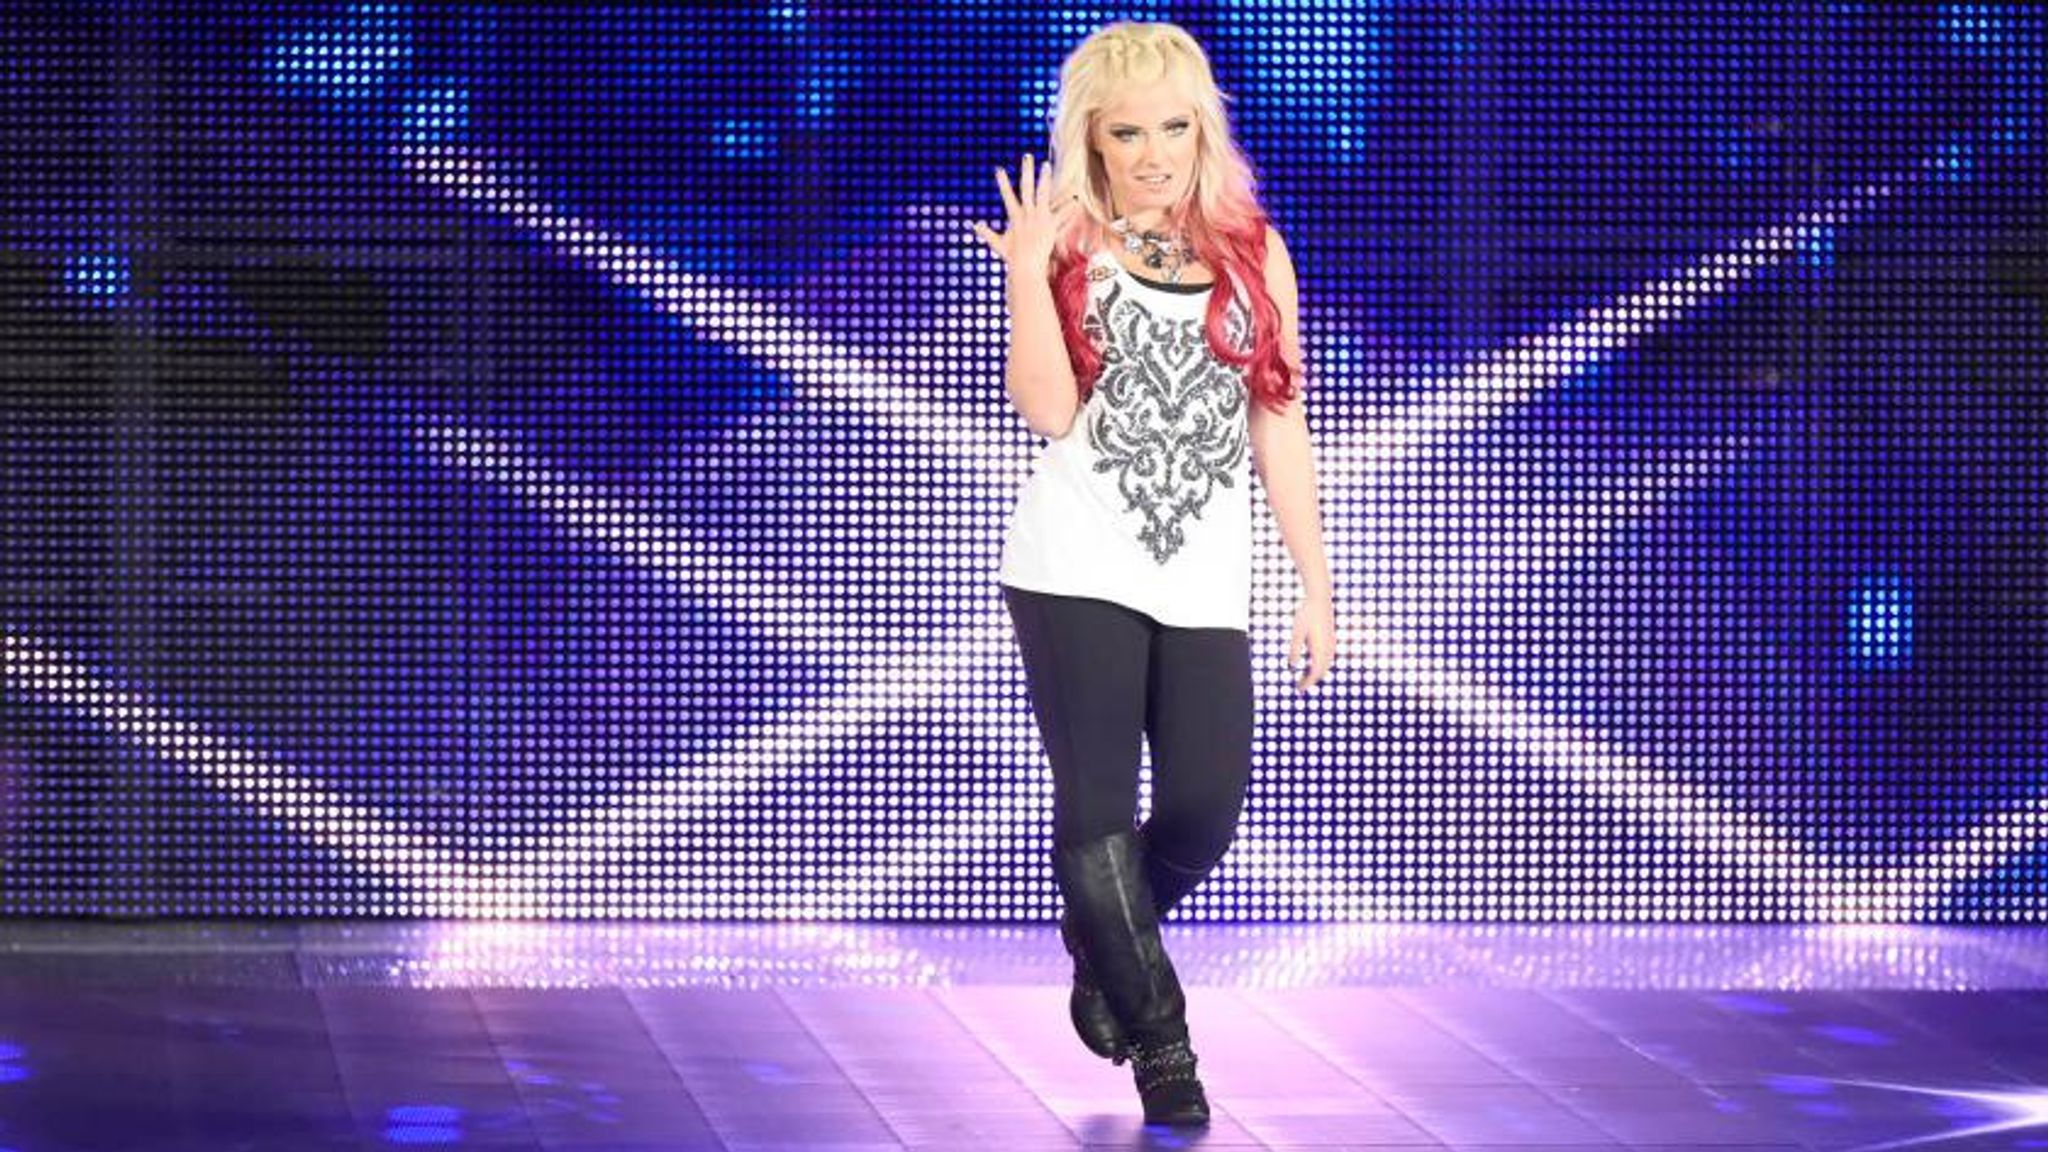 Alexa Bliss interview: WWE star on No Mercy, NXT and UK tour